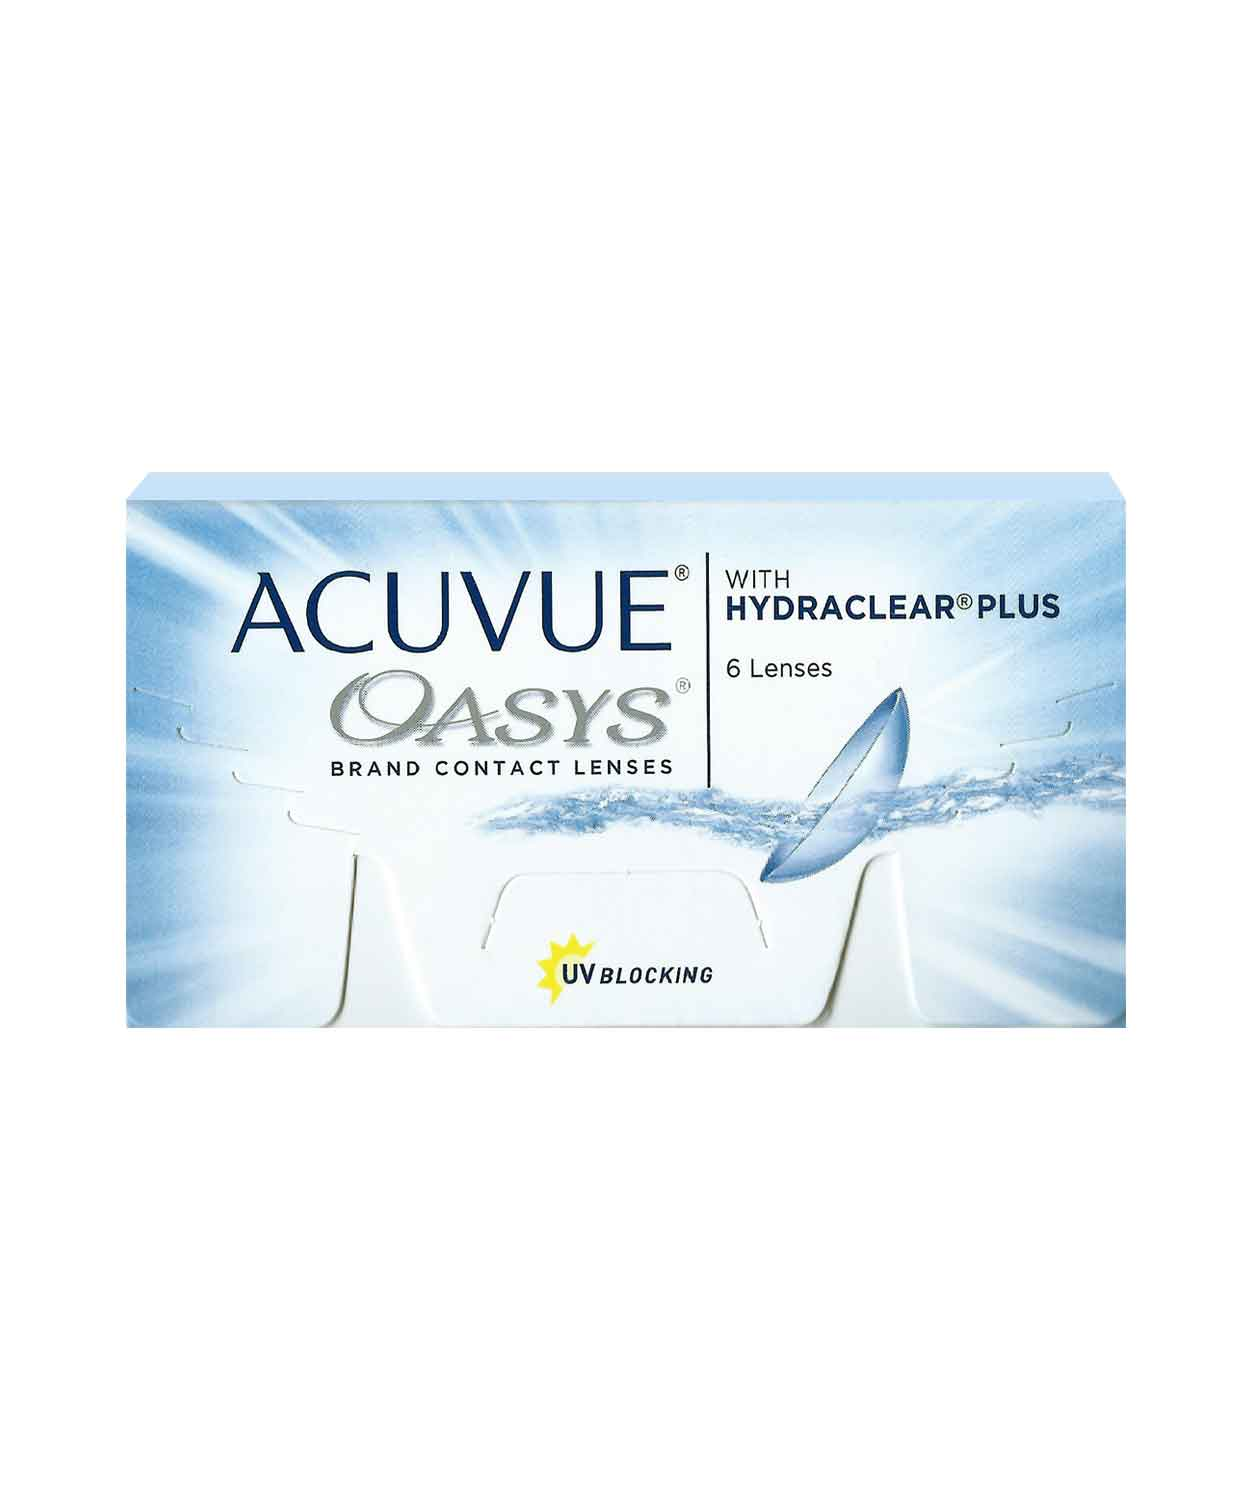 Acuvue Oasys Contact Lens Malaysia